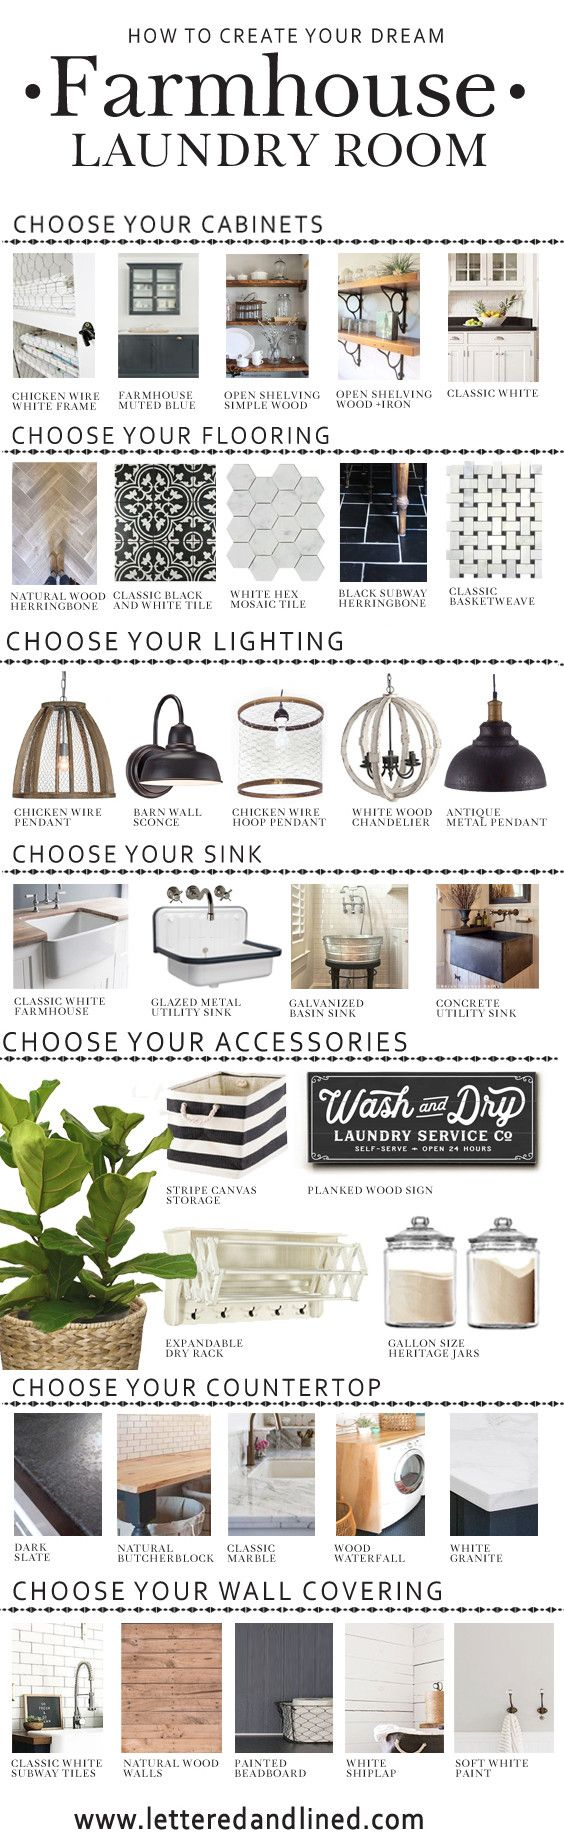 HOUSE + HOME BLOG | How To Create Your Dream Farmhouse Laundry Room – Lettered and Lined